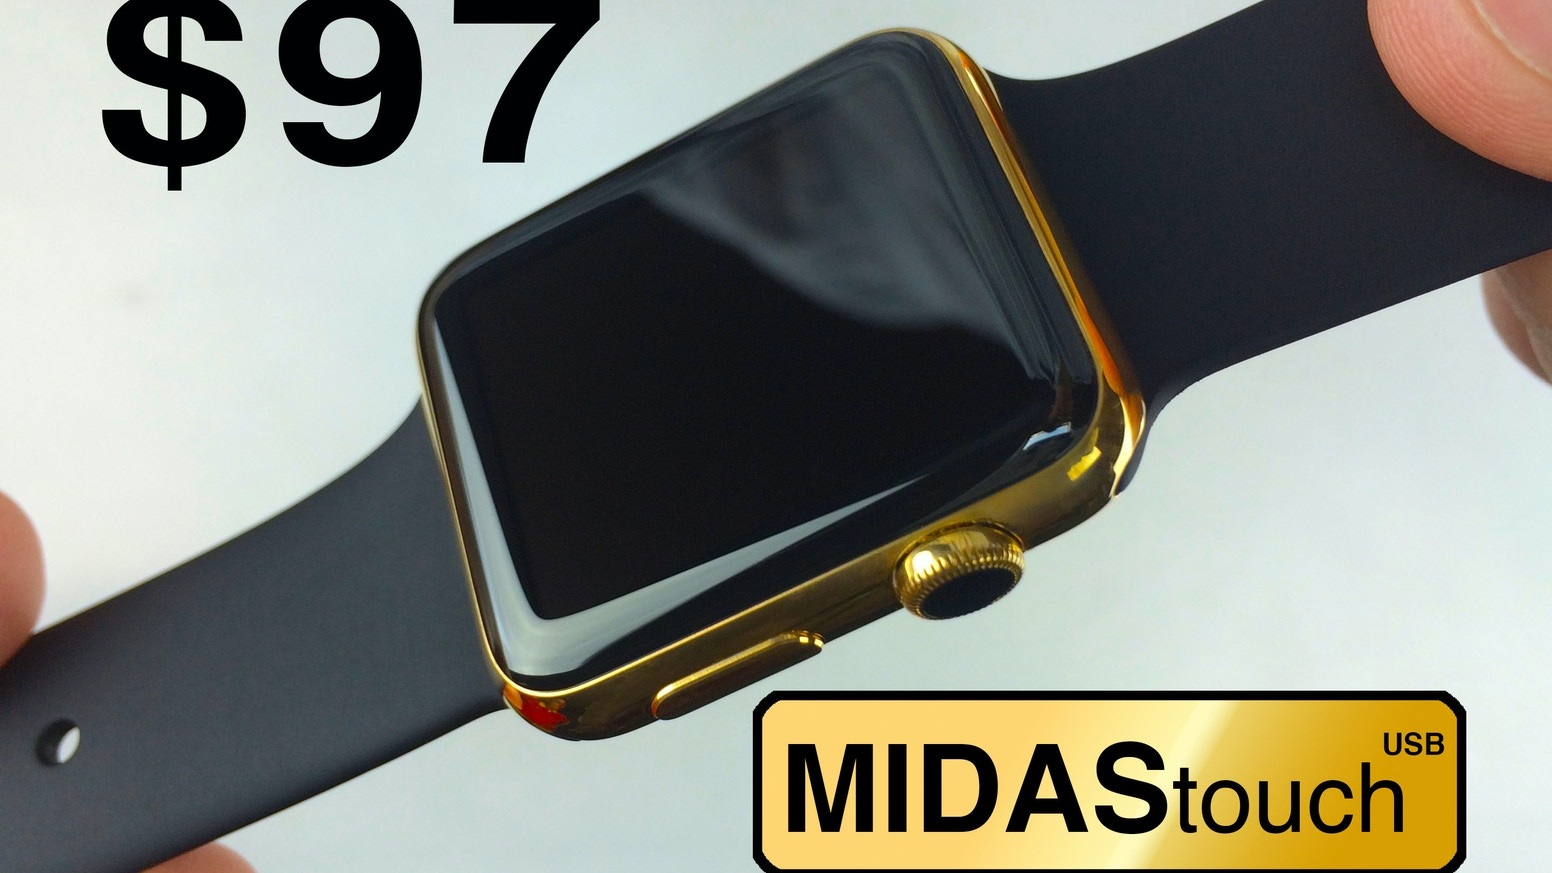 24K real gold plating of steel smart devices, watches, jewelry. Easily turn your watch to gold yourself with our gold plating kit.